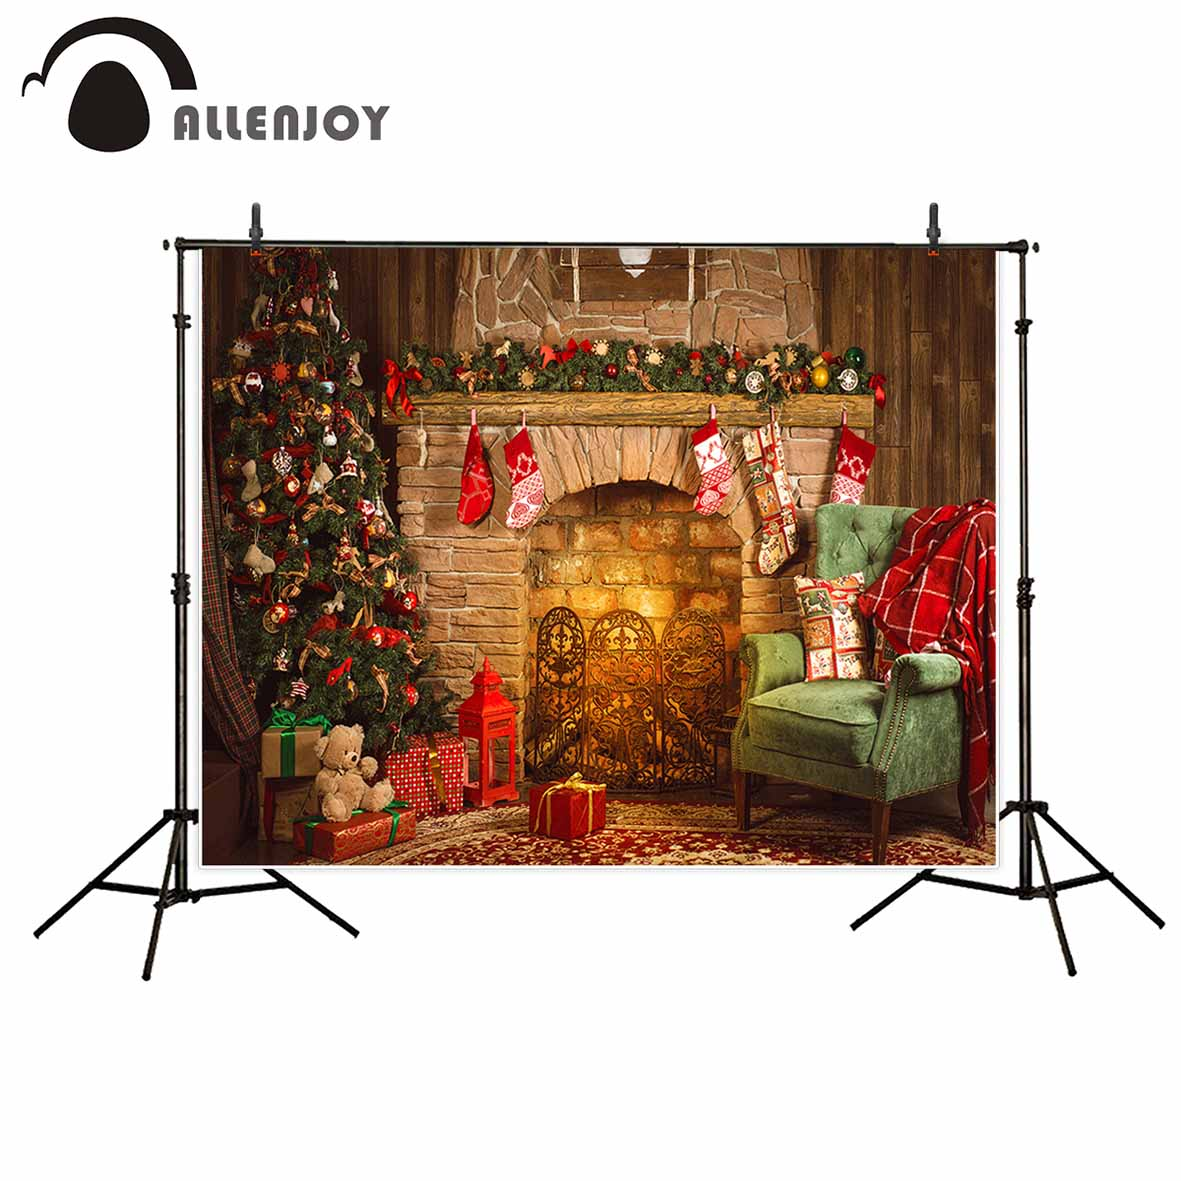 Allenjoy backgrounds for photo studio Christmas fireplace tree chair bear backdrop camera photography professional allenjoy photo backgrounds christmas photo backdrop toys gifts the christmas tree bear fire photography